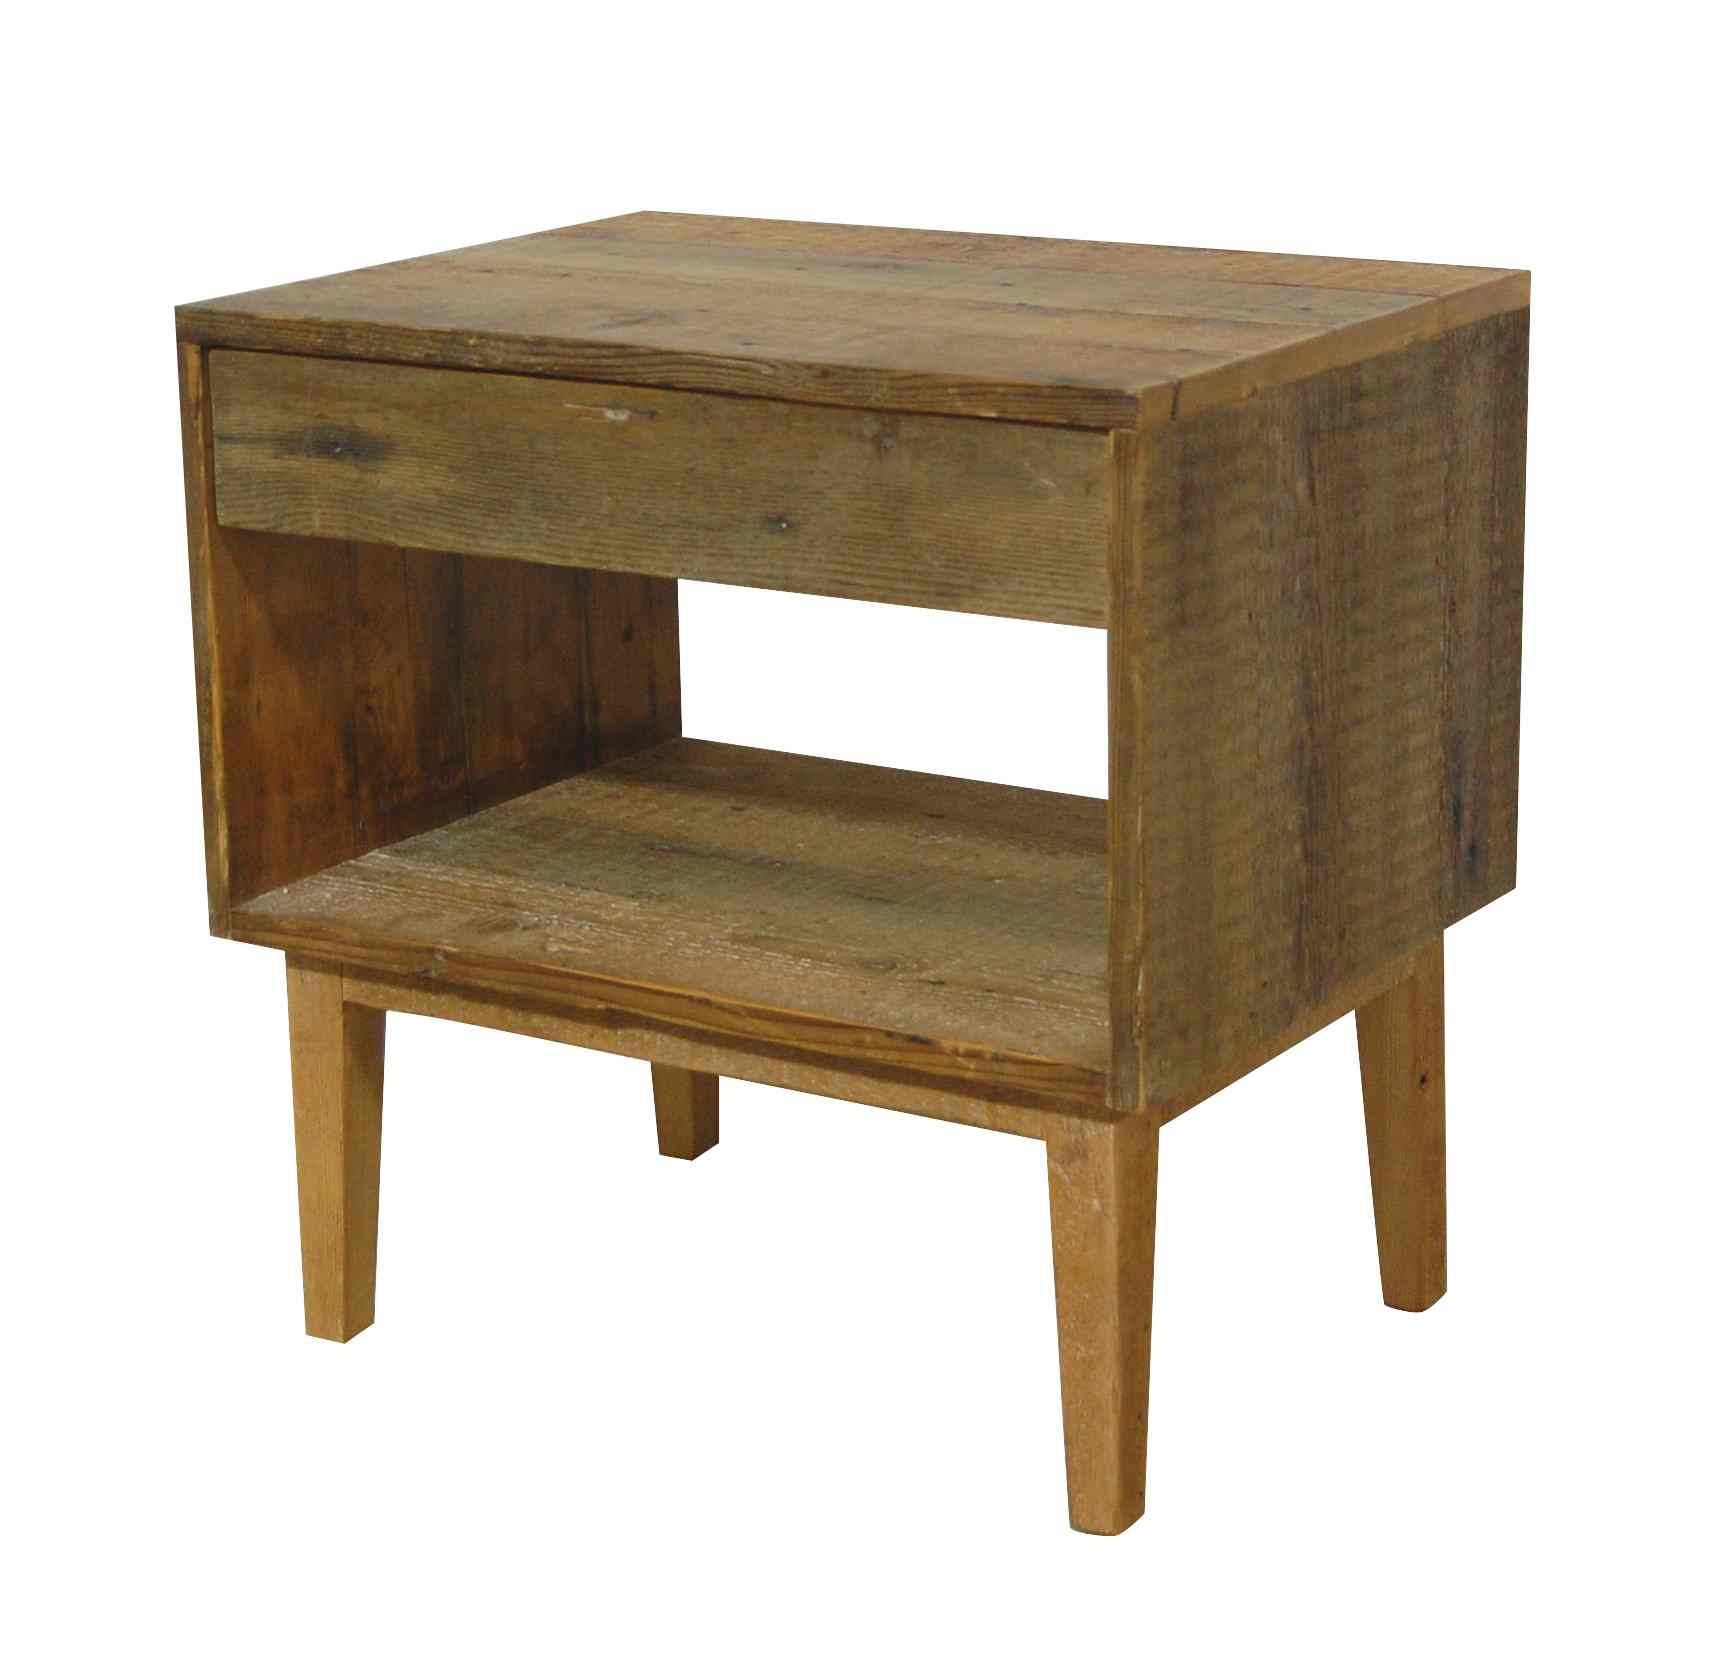 Woods furniture at the galleria - How to make rustic wood furniture ...